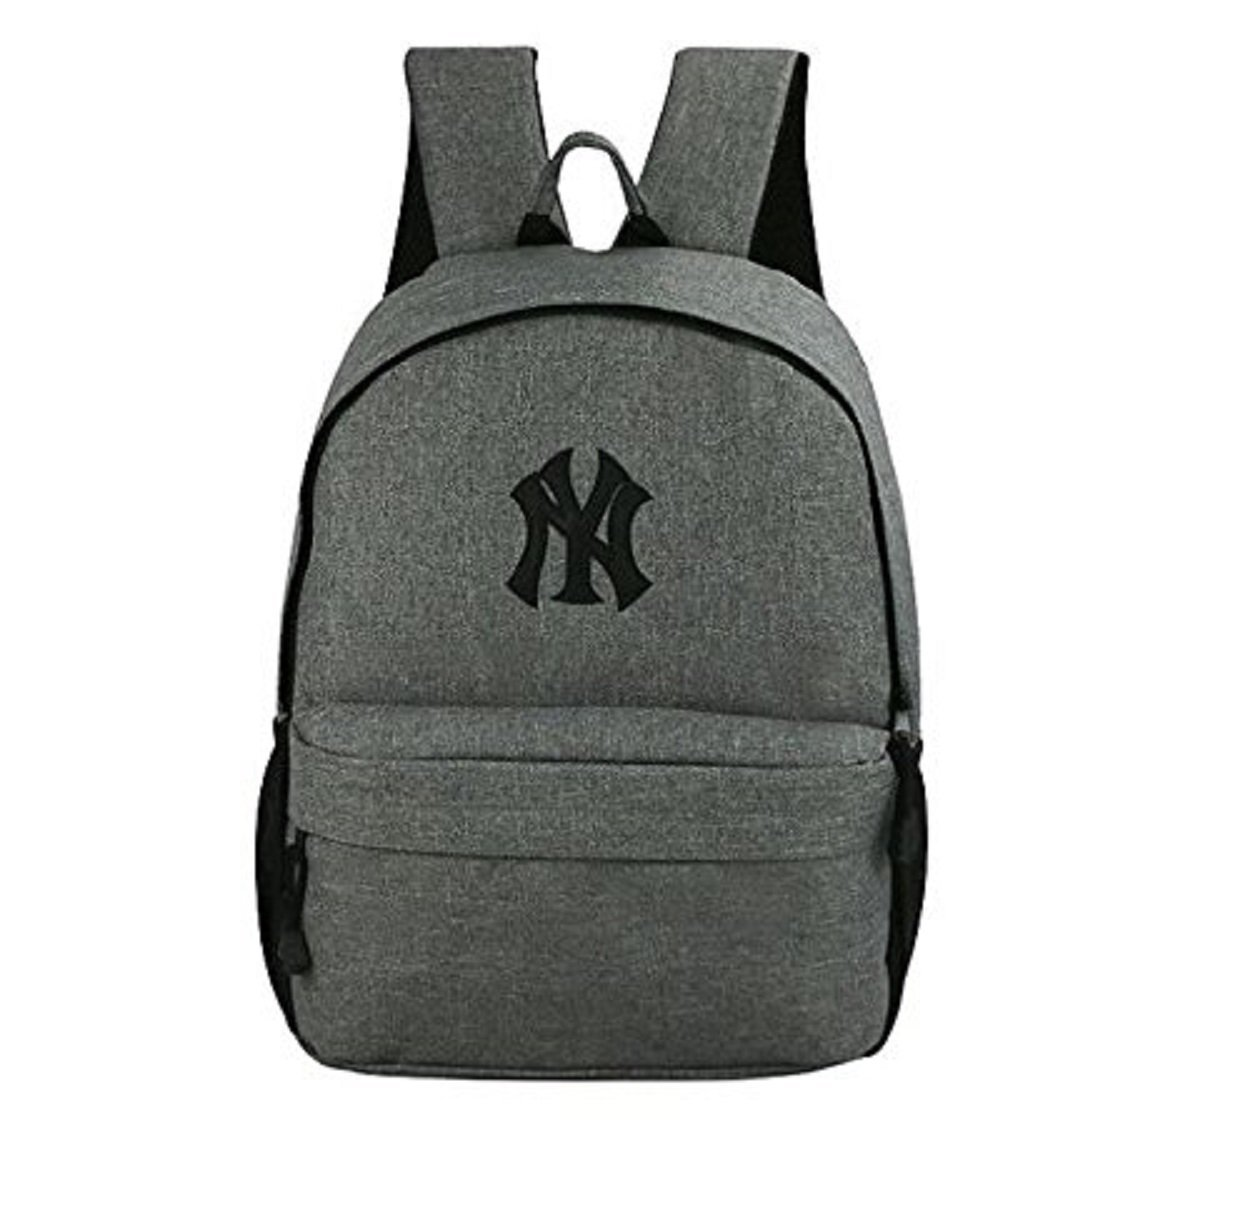 official new york yankees ny grey black trim backpack. Black Bedroom Furniture Sets. Home Design Ideas